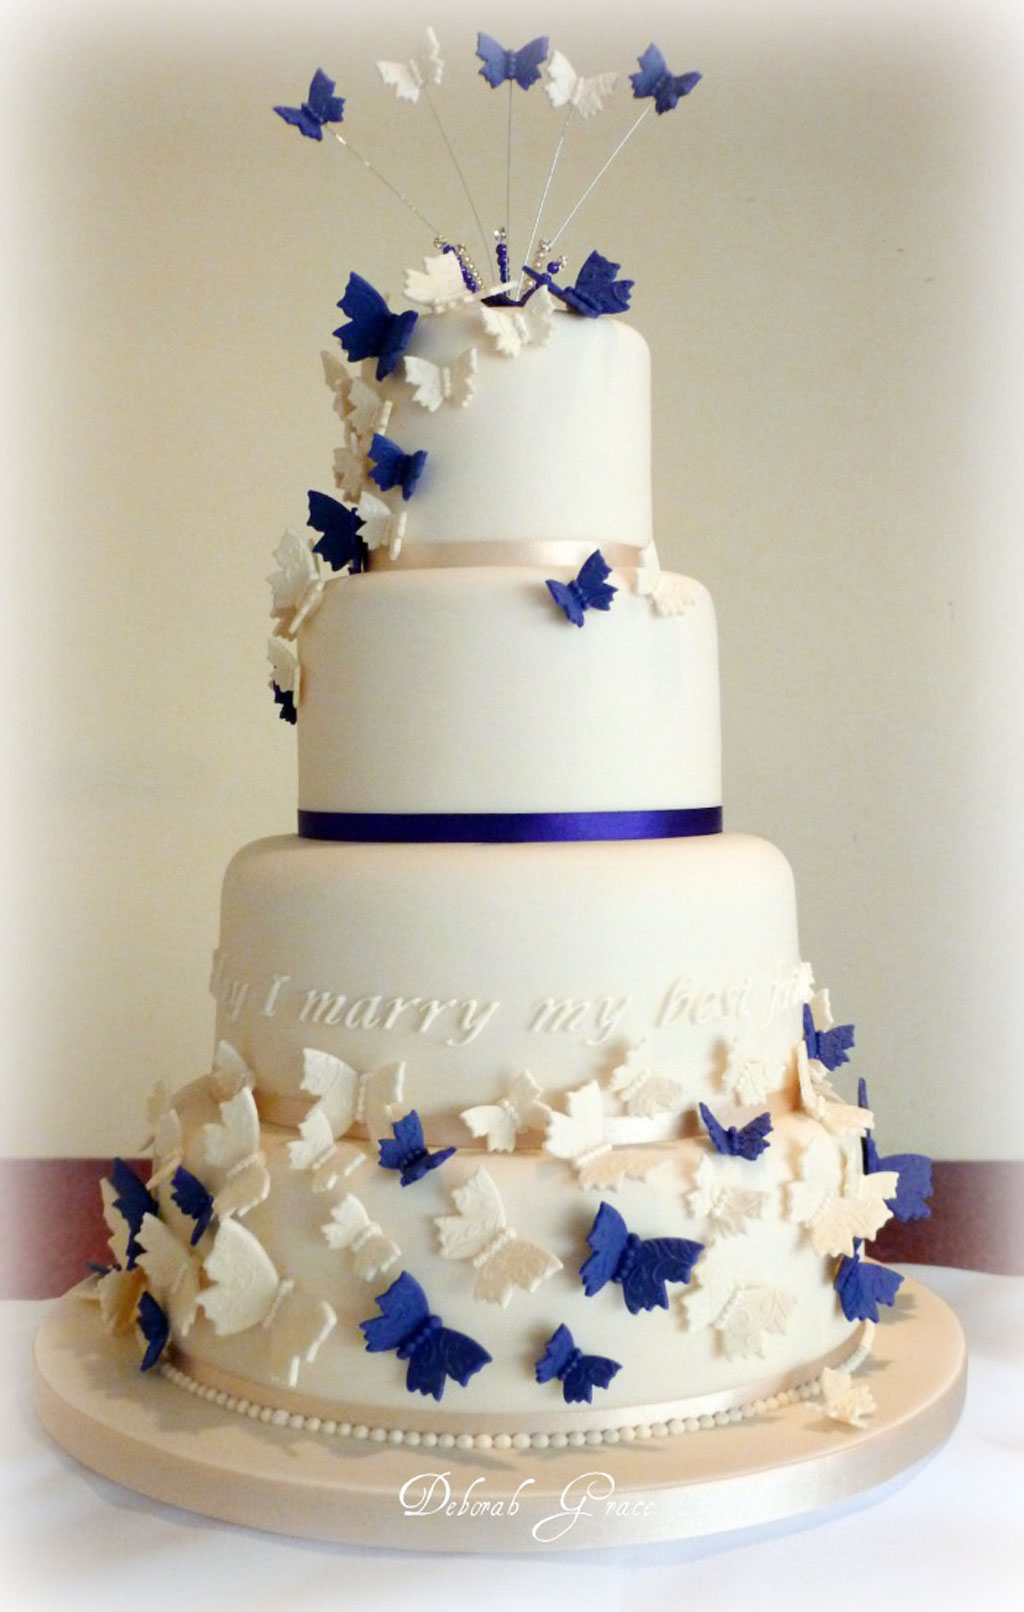 Cake Decorating Wedding Cakes : Butterfly Wedding Cakes Decoration Wedding Cake - Cake ...